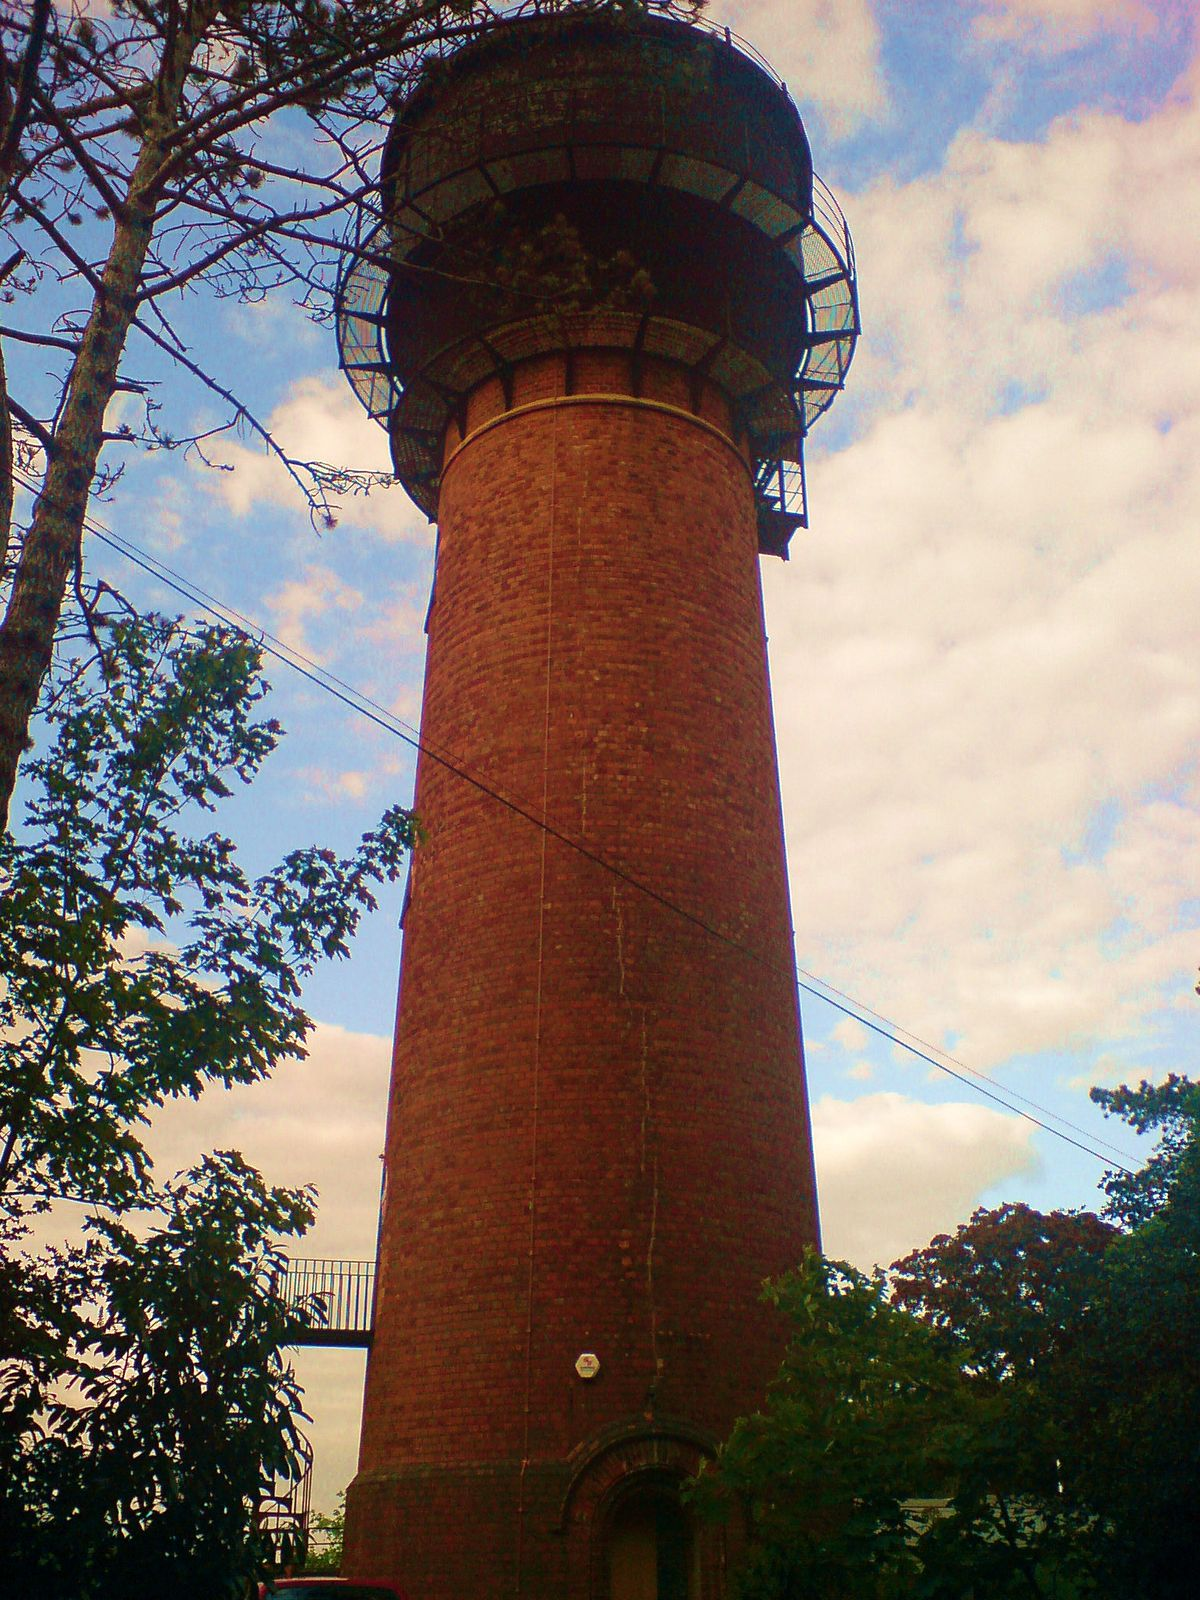 The Water Tower Coleshill Wikipedia